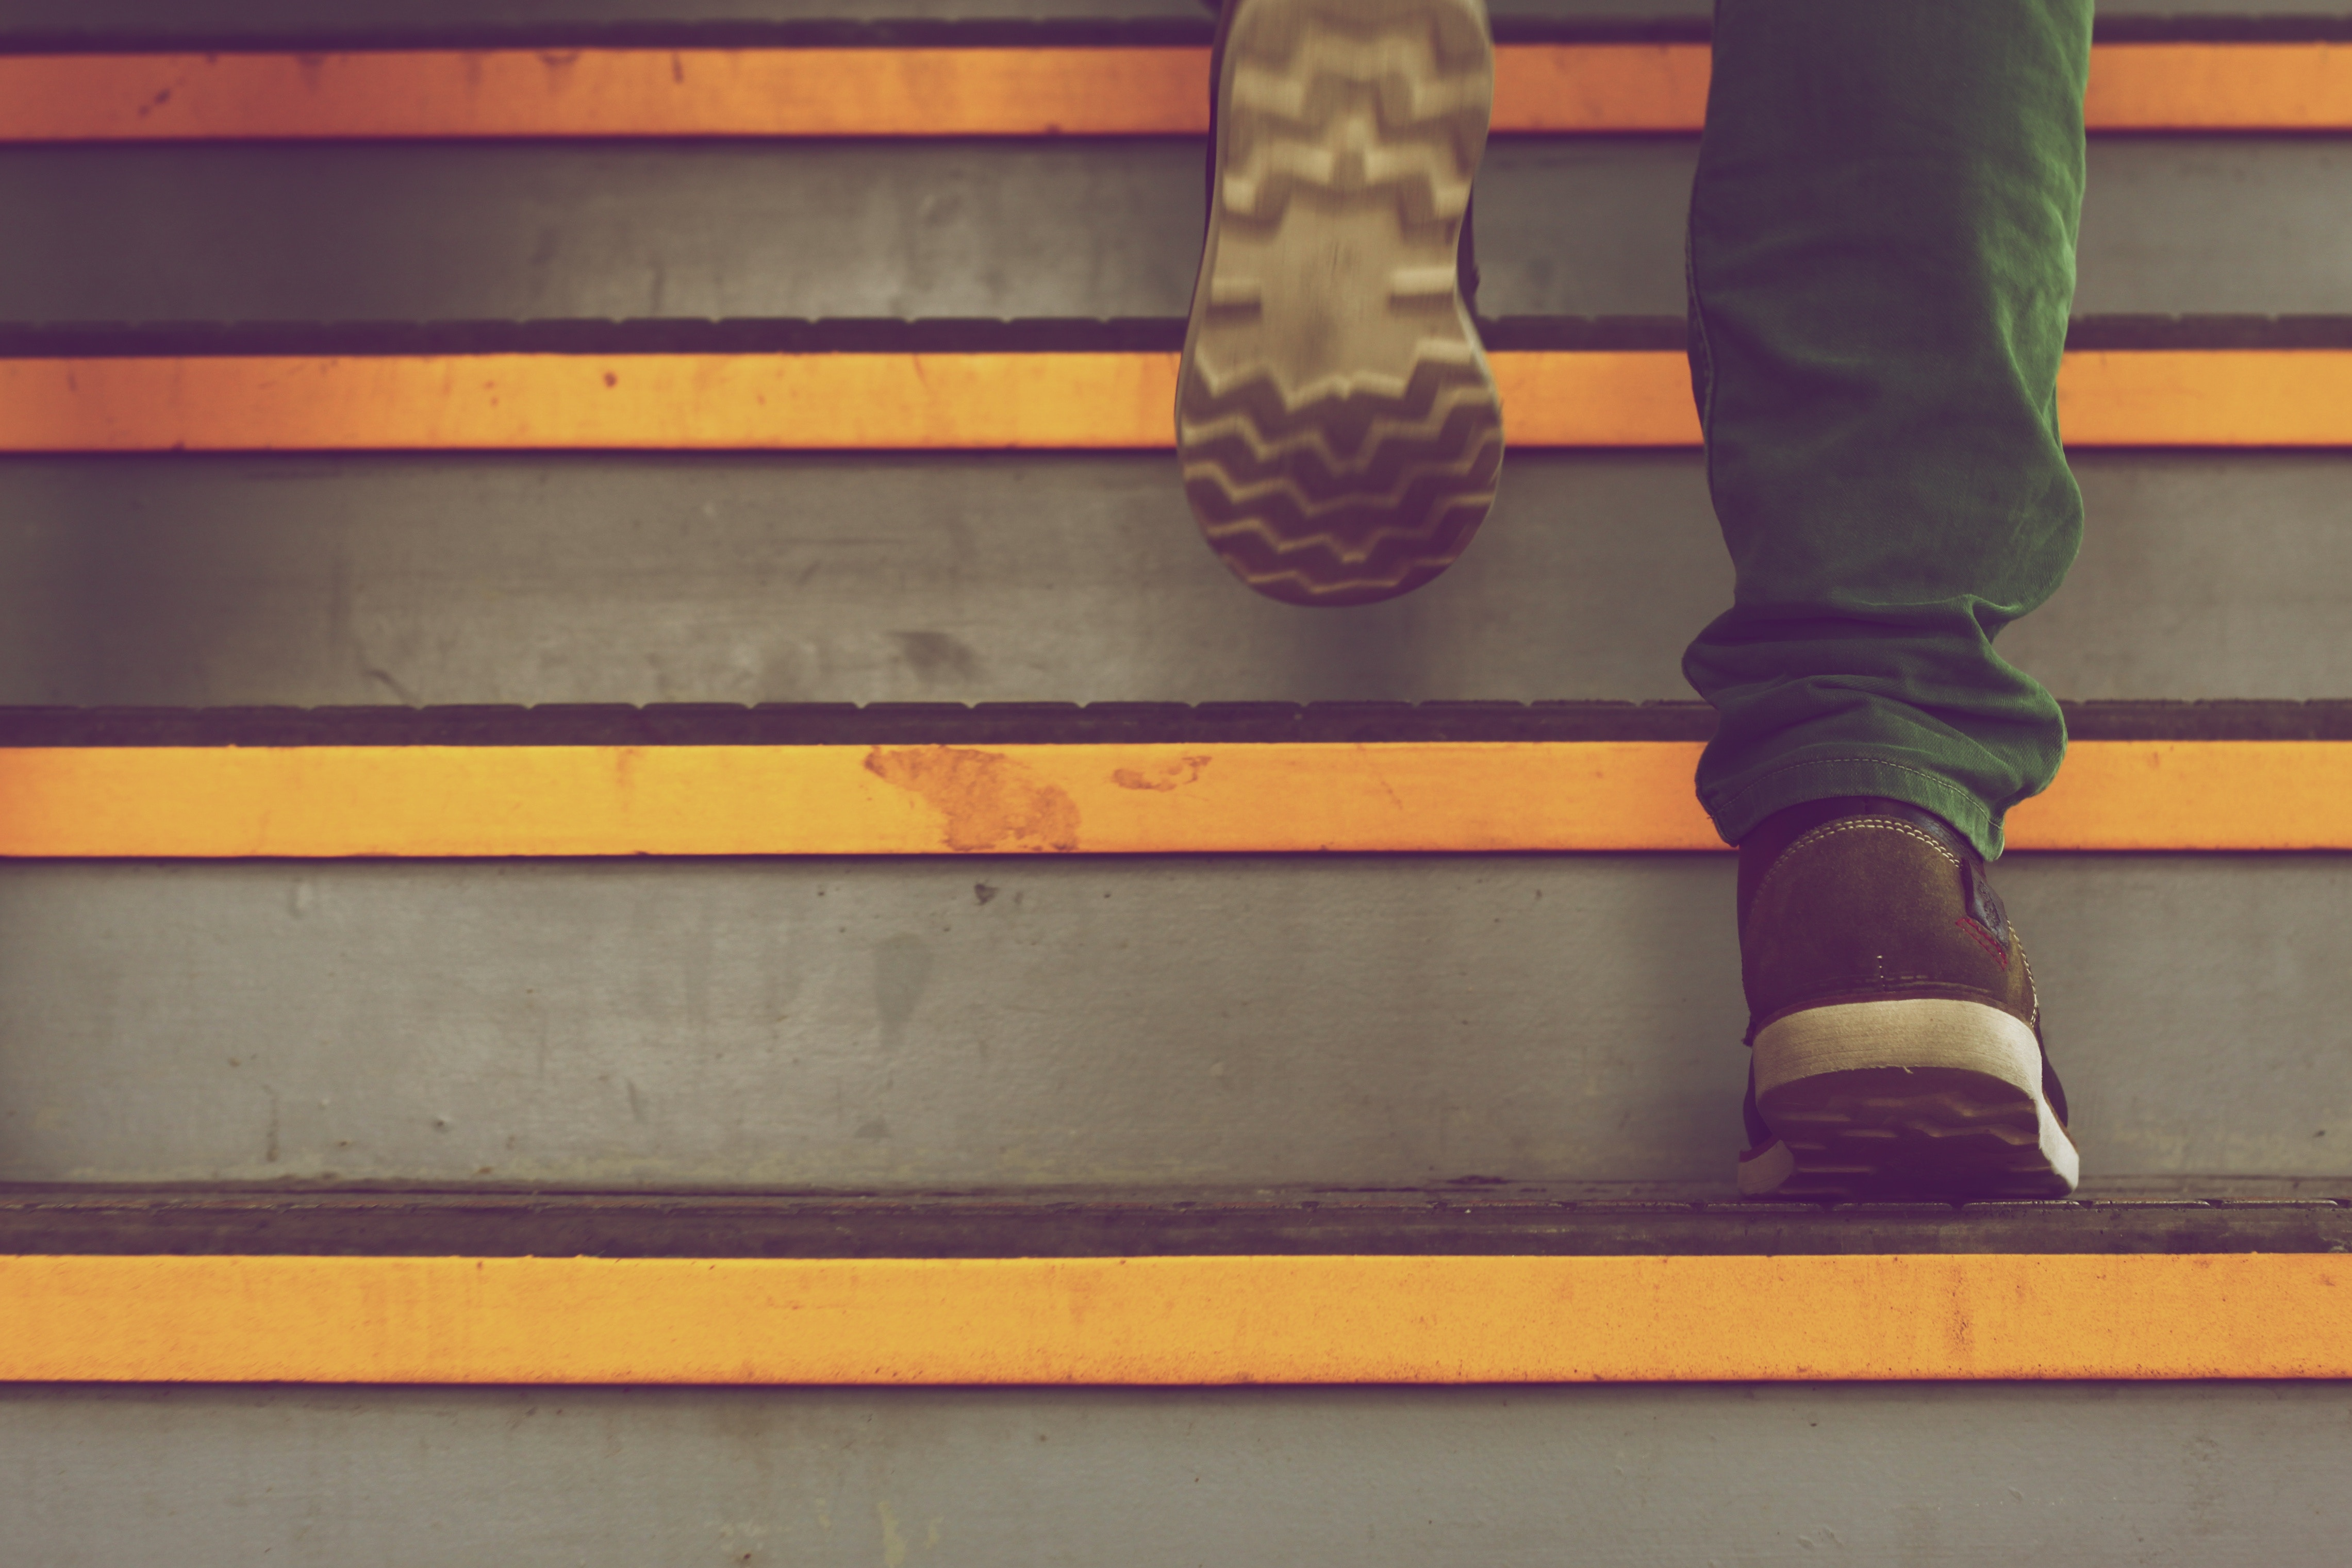 Have You Taken the Steps to Benefits from DDMRP?